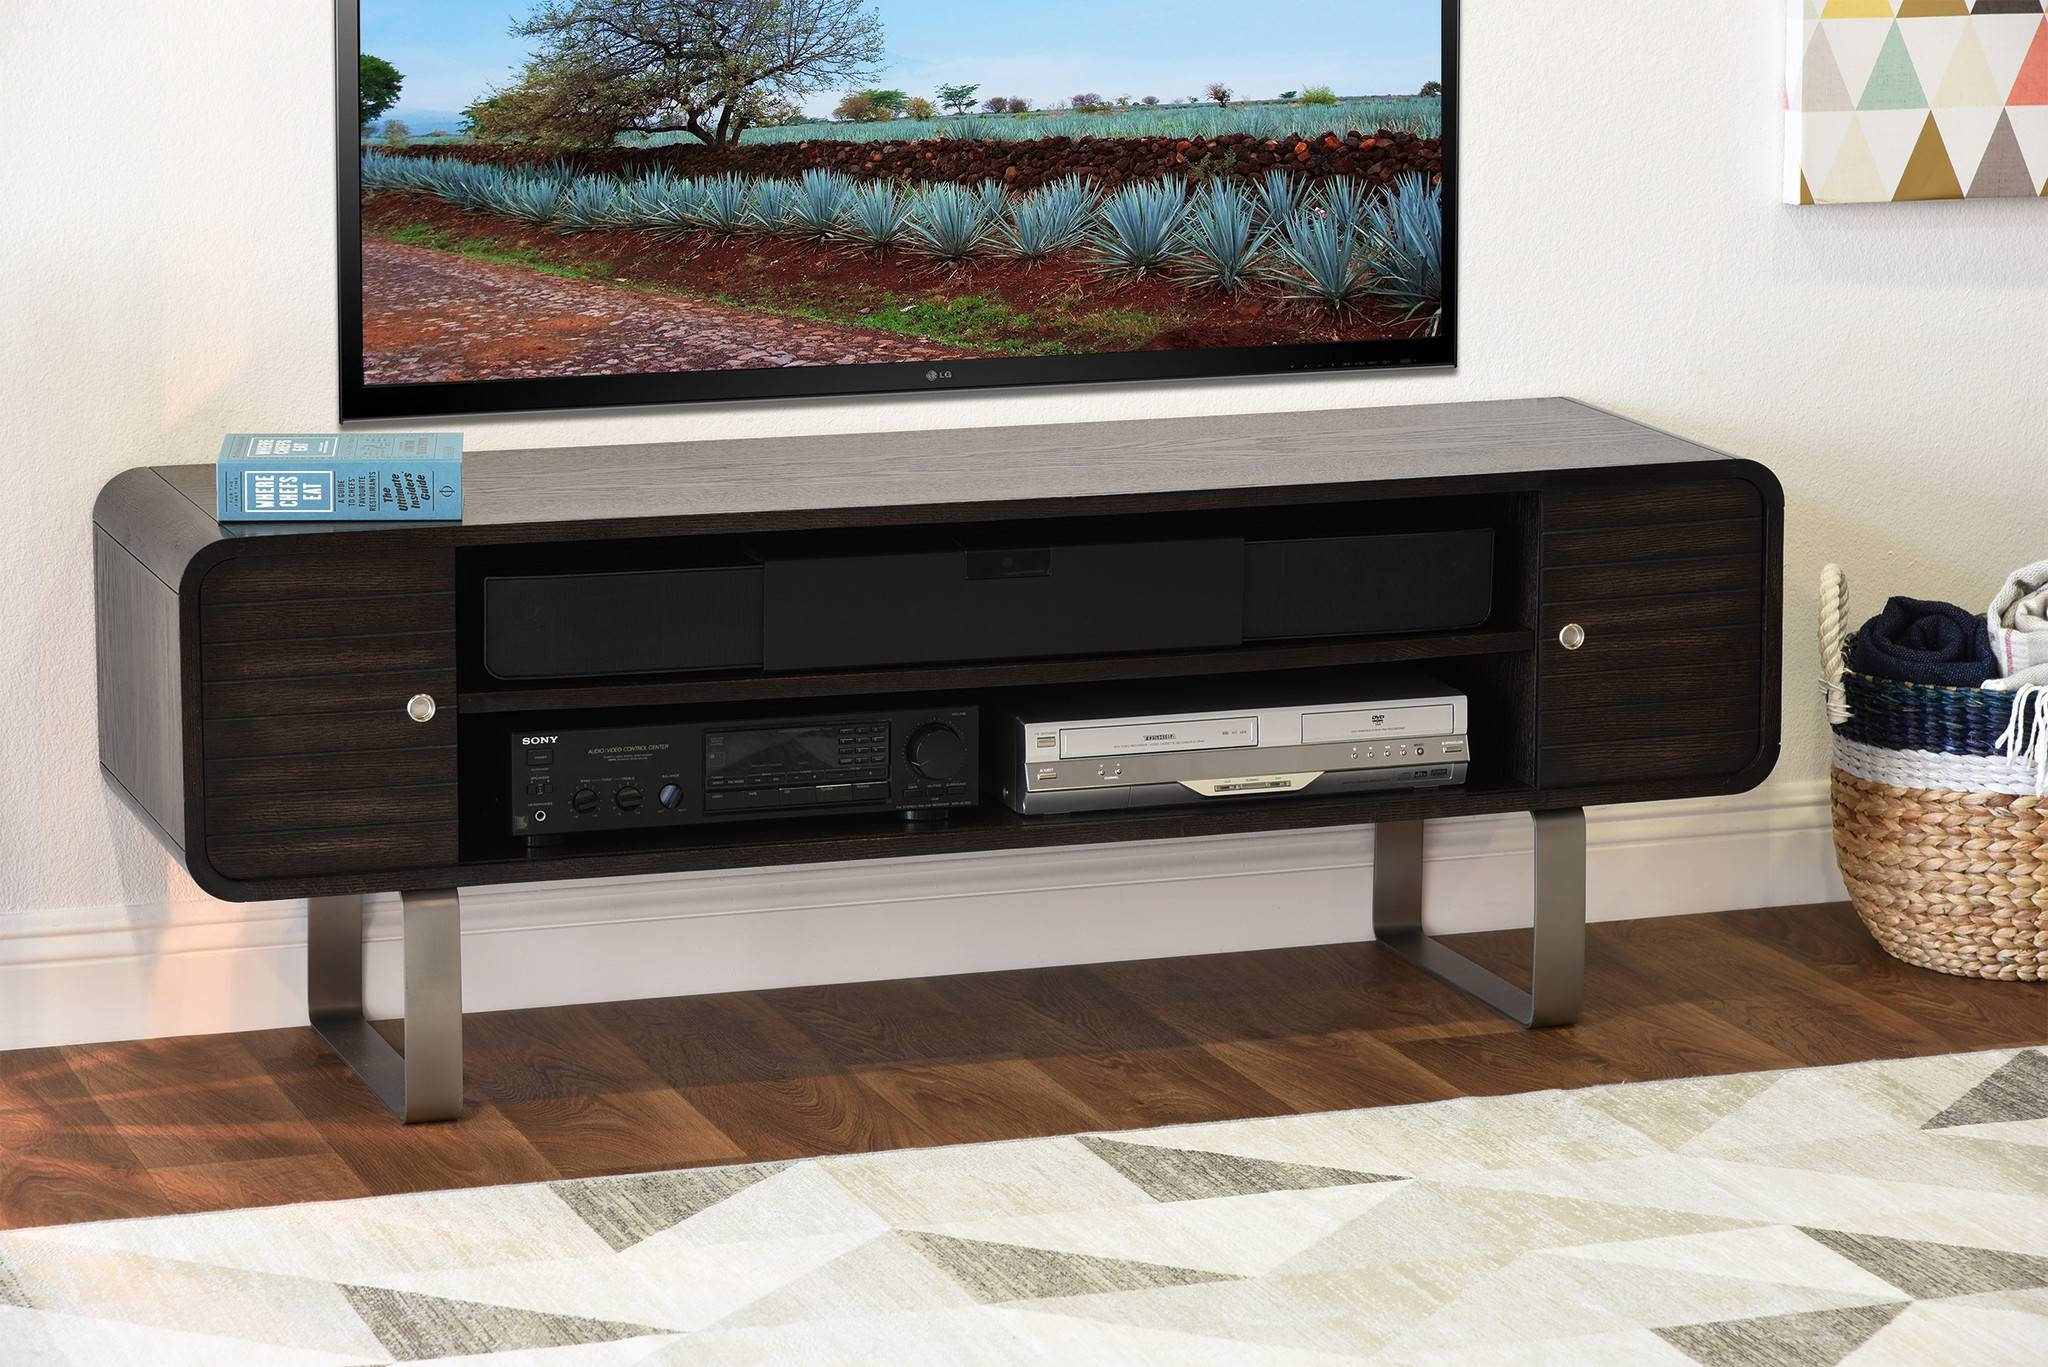 Tv Stand With Rounded Corners - Round Designs throughout Tv Stands With Rounded Corners (Image 13 of 15)